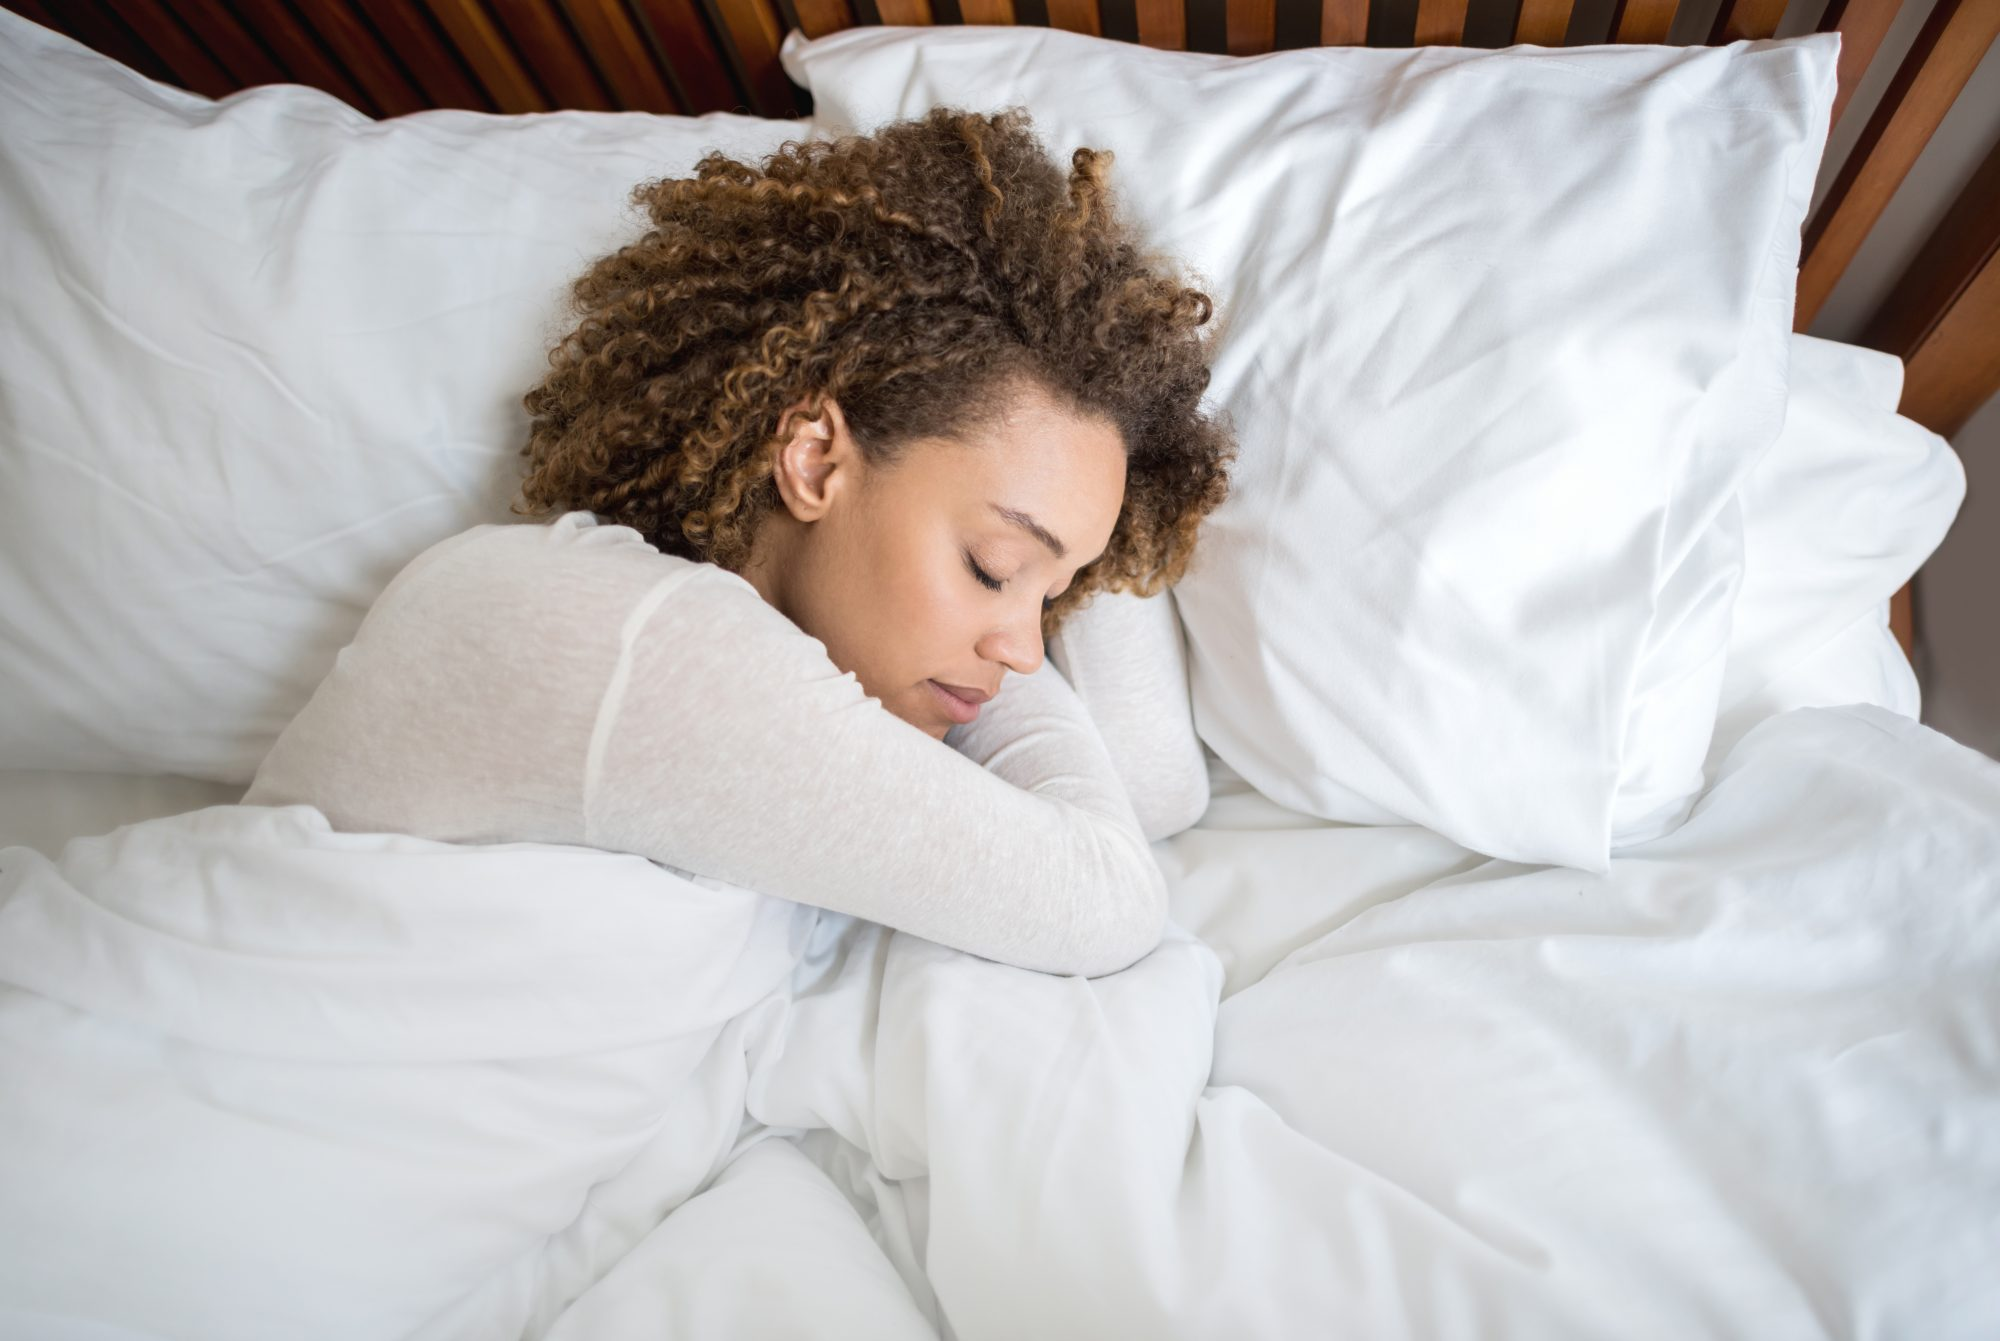 The Number One Thing You Can Do for Better Sleep, According to a Sleep Specialist